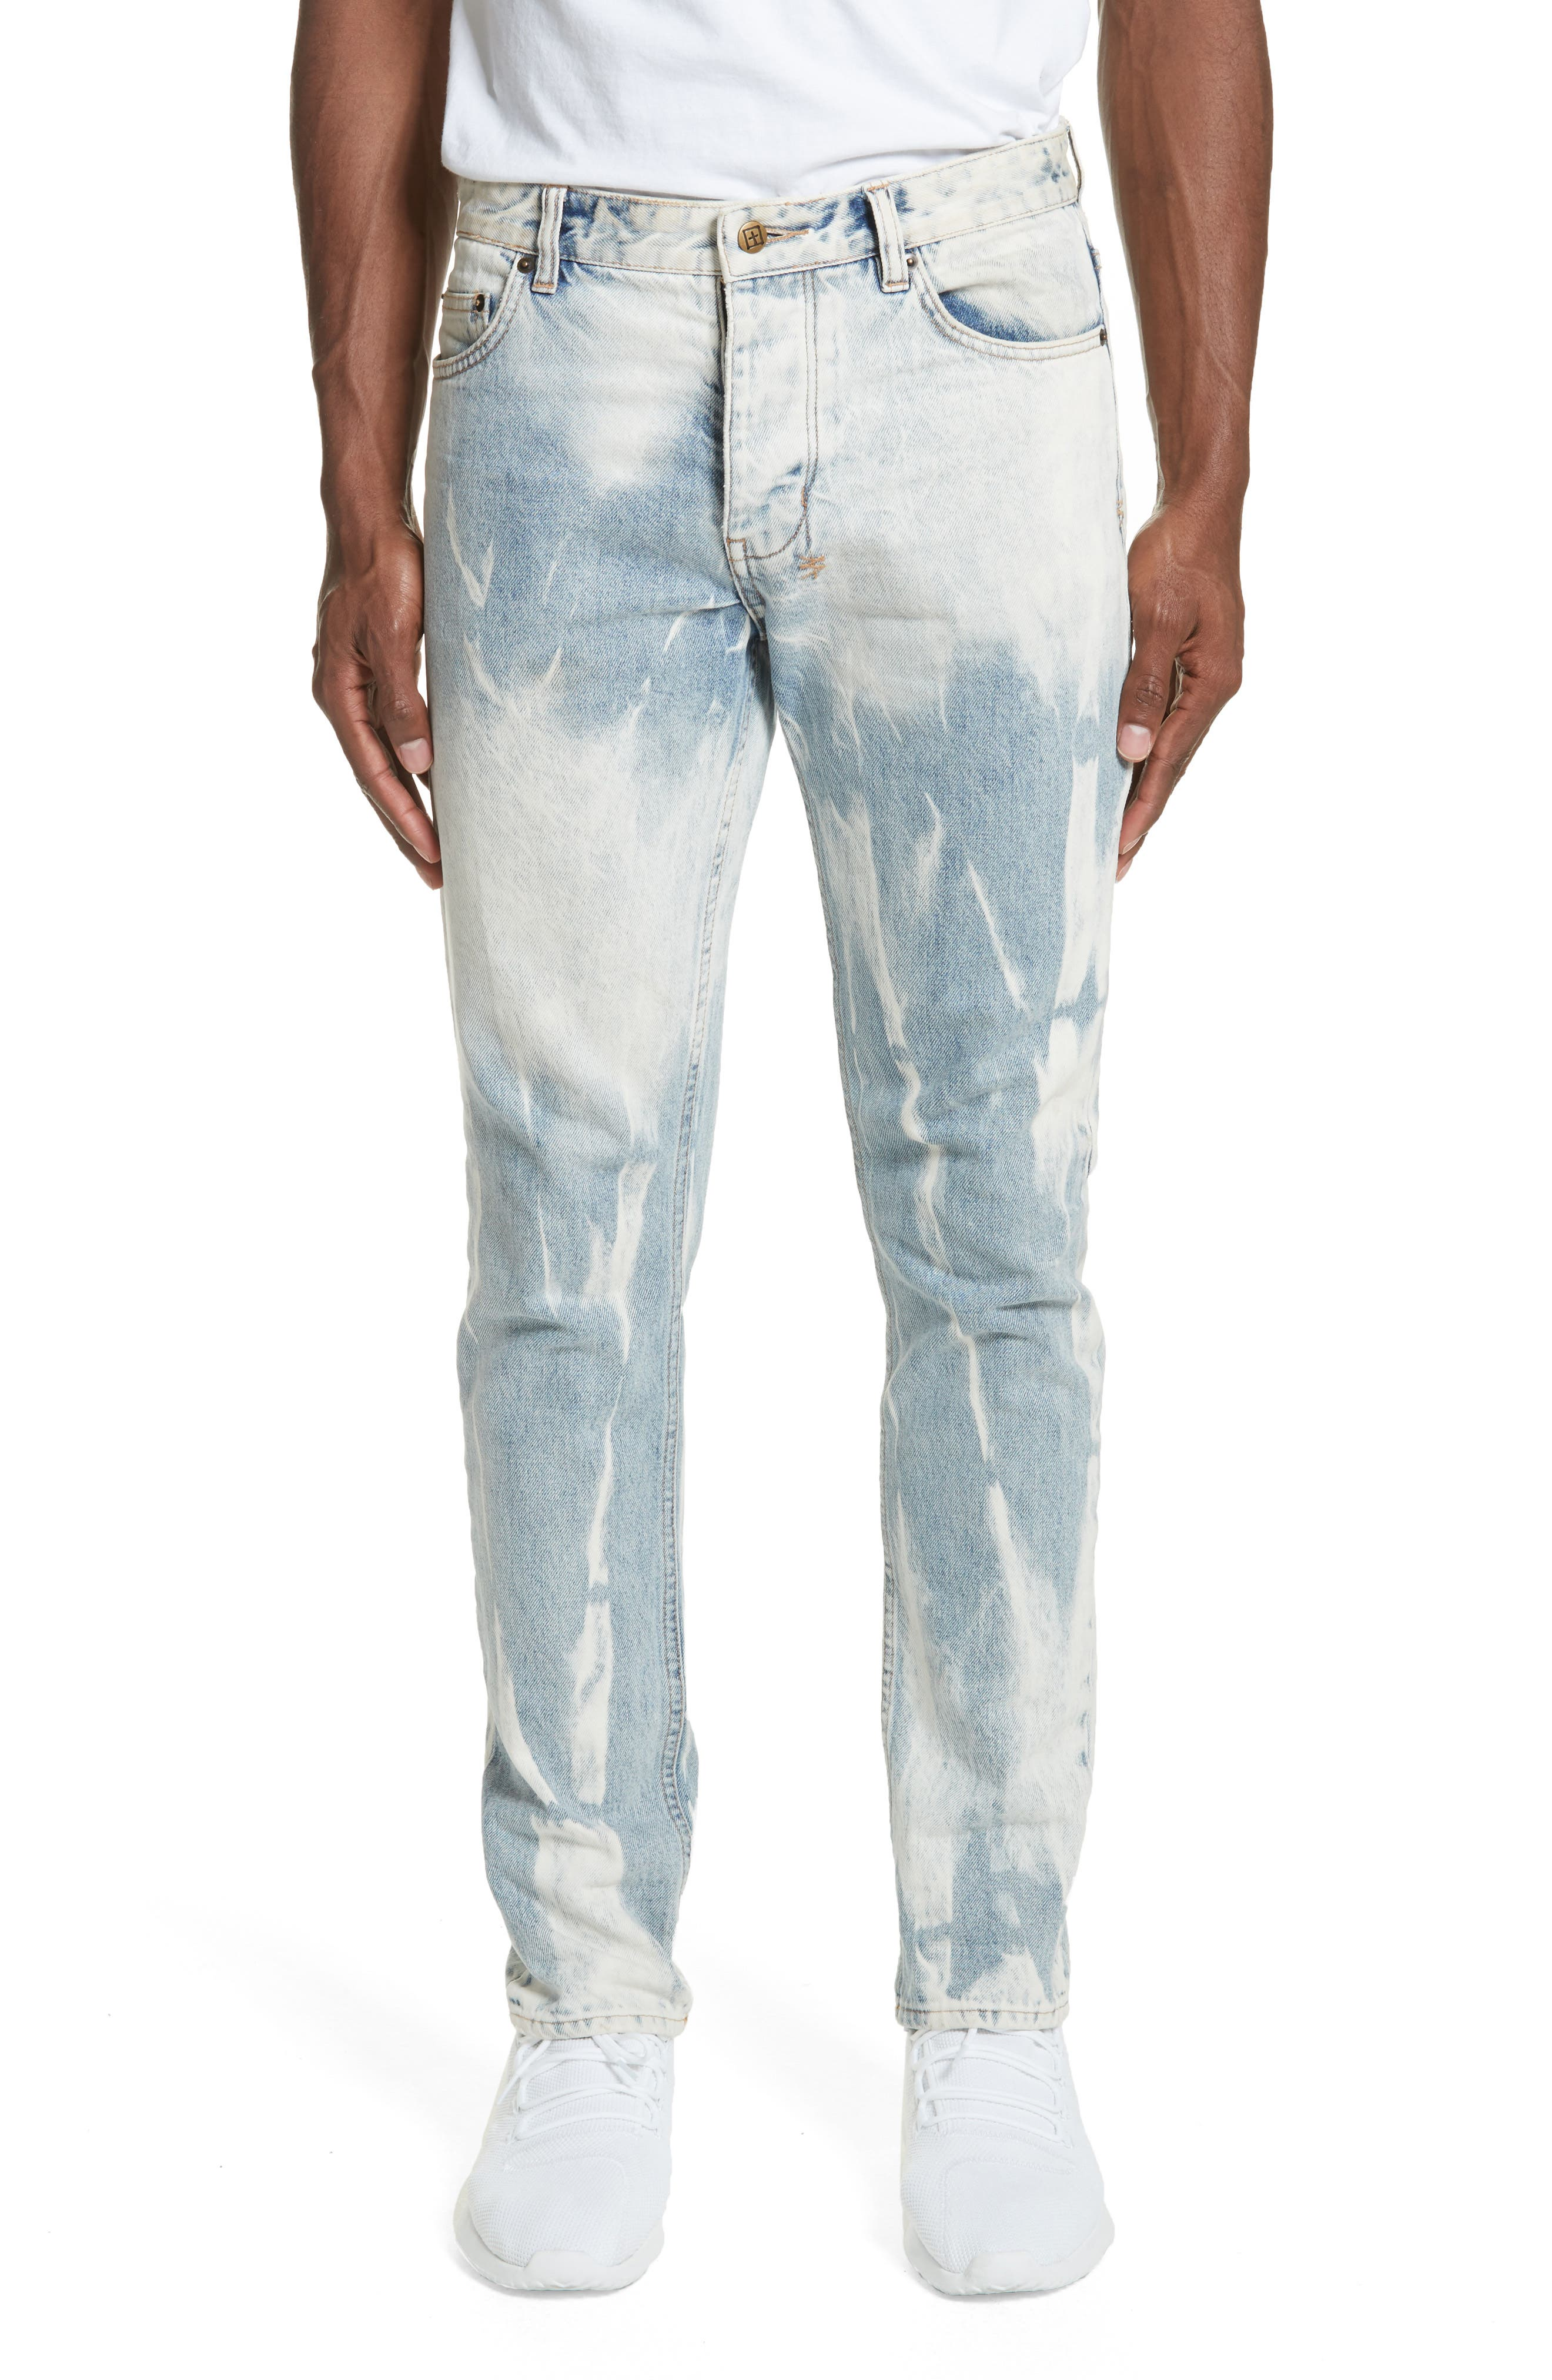 Chitch Mile Skinny Jeans,                         Main,                         color, Denim